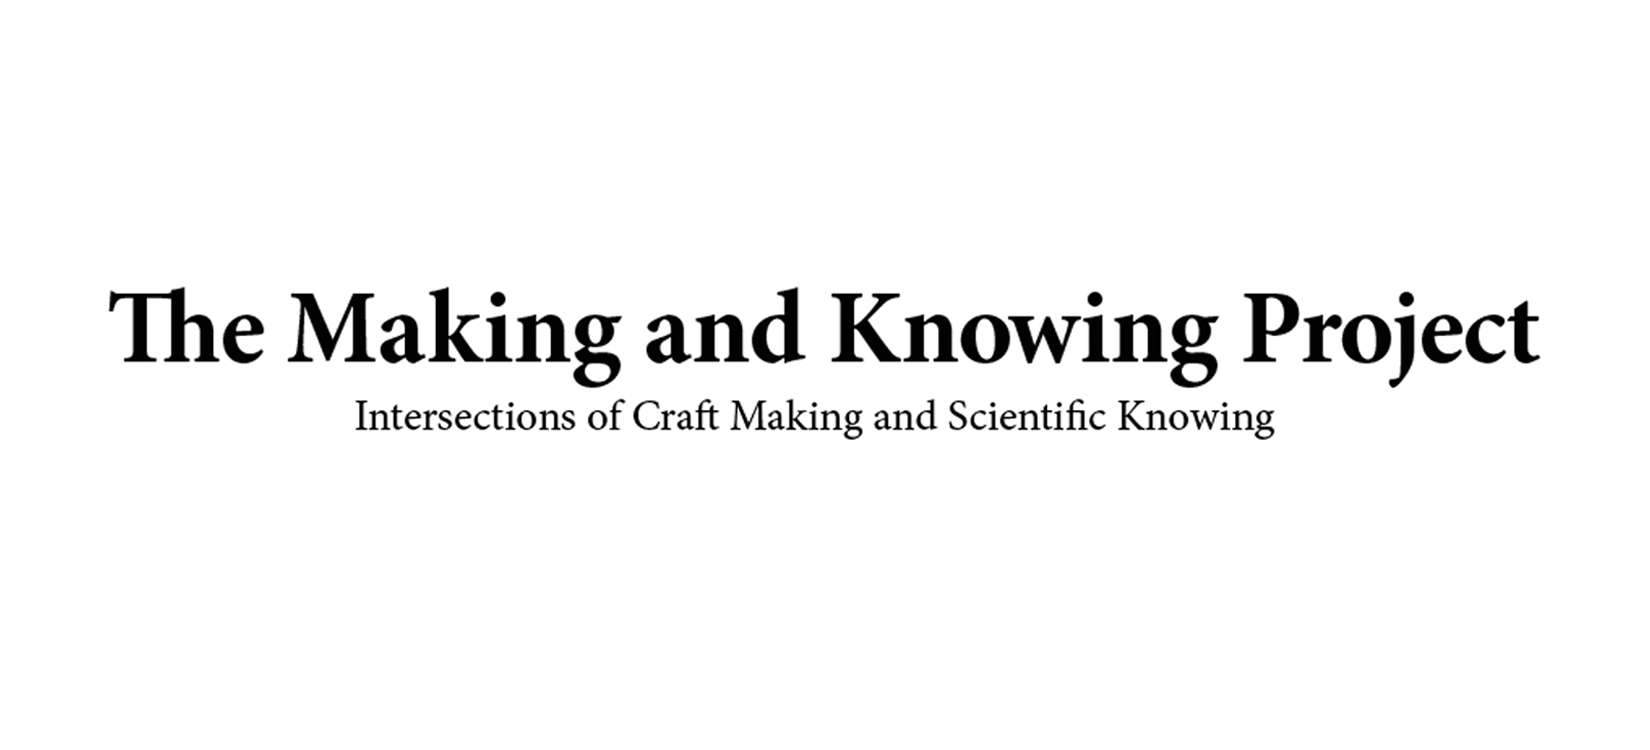 The Making and Knowing Project